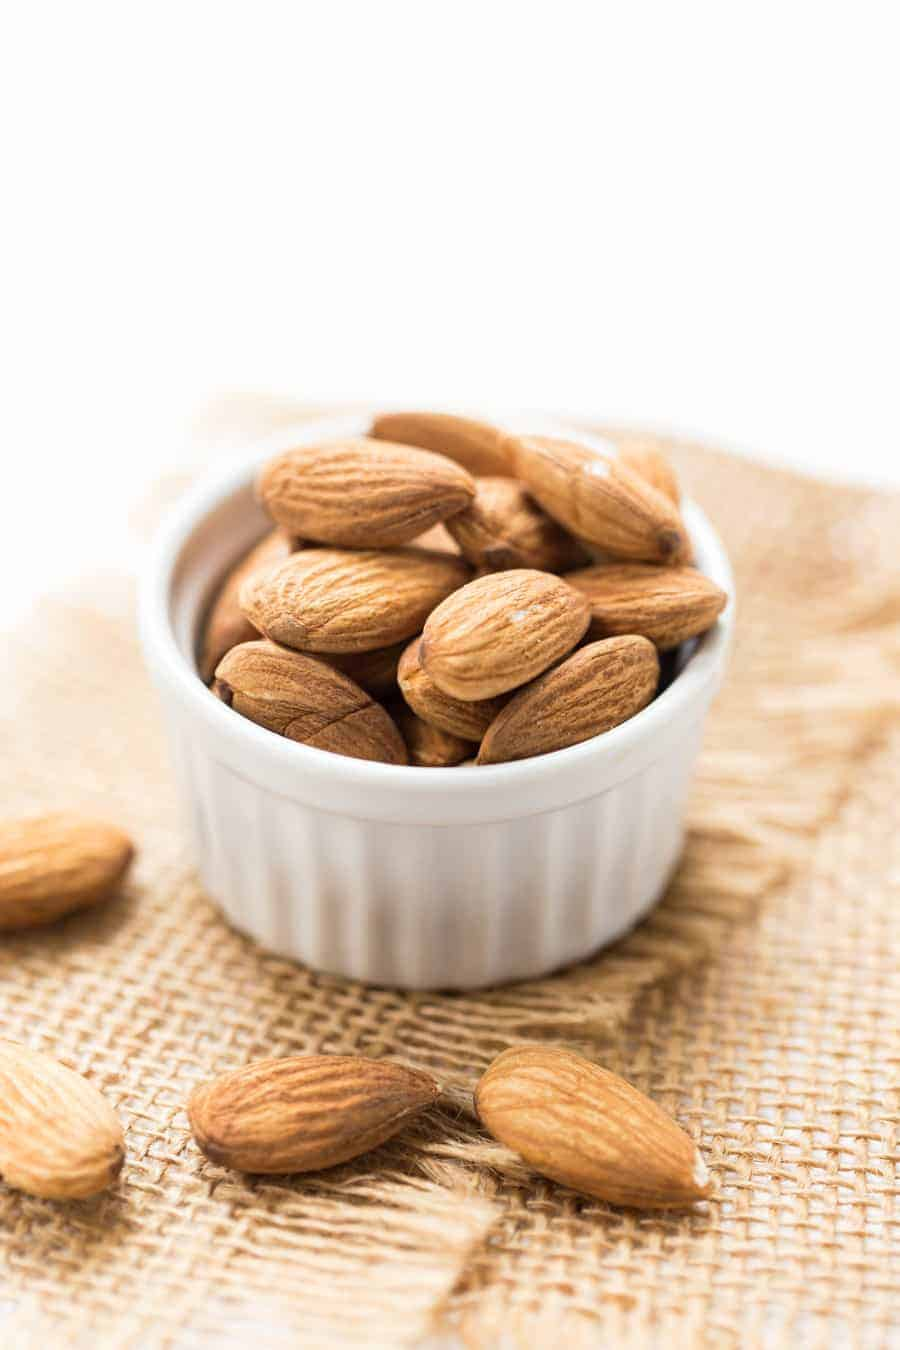 Whole Almonds from Bob's Red Mill